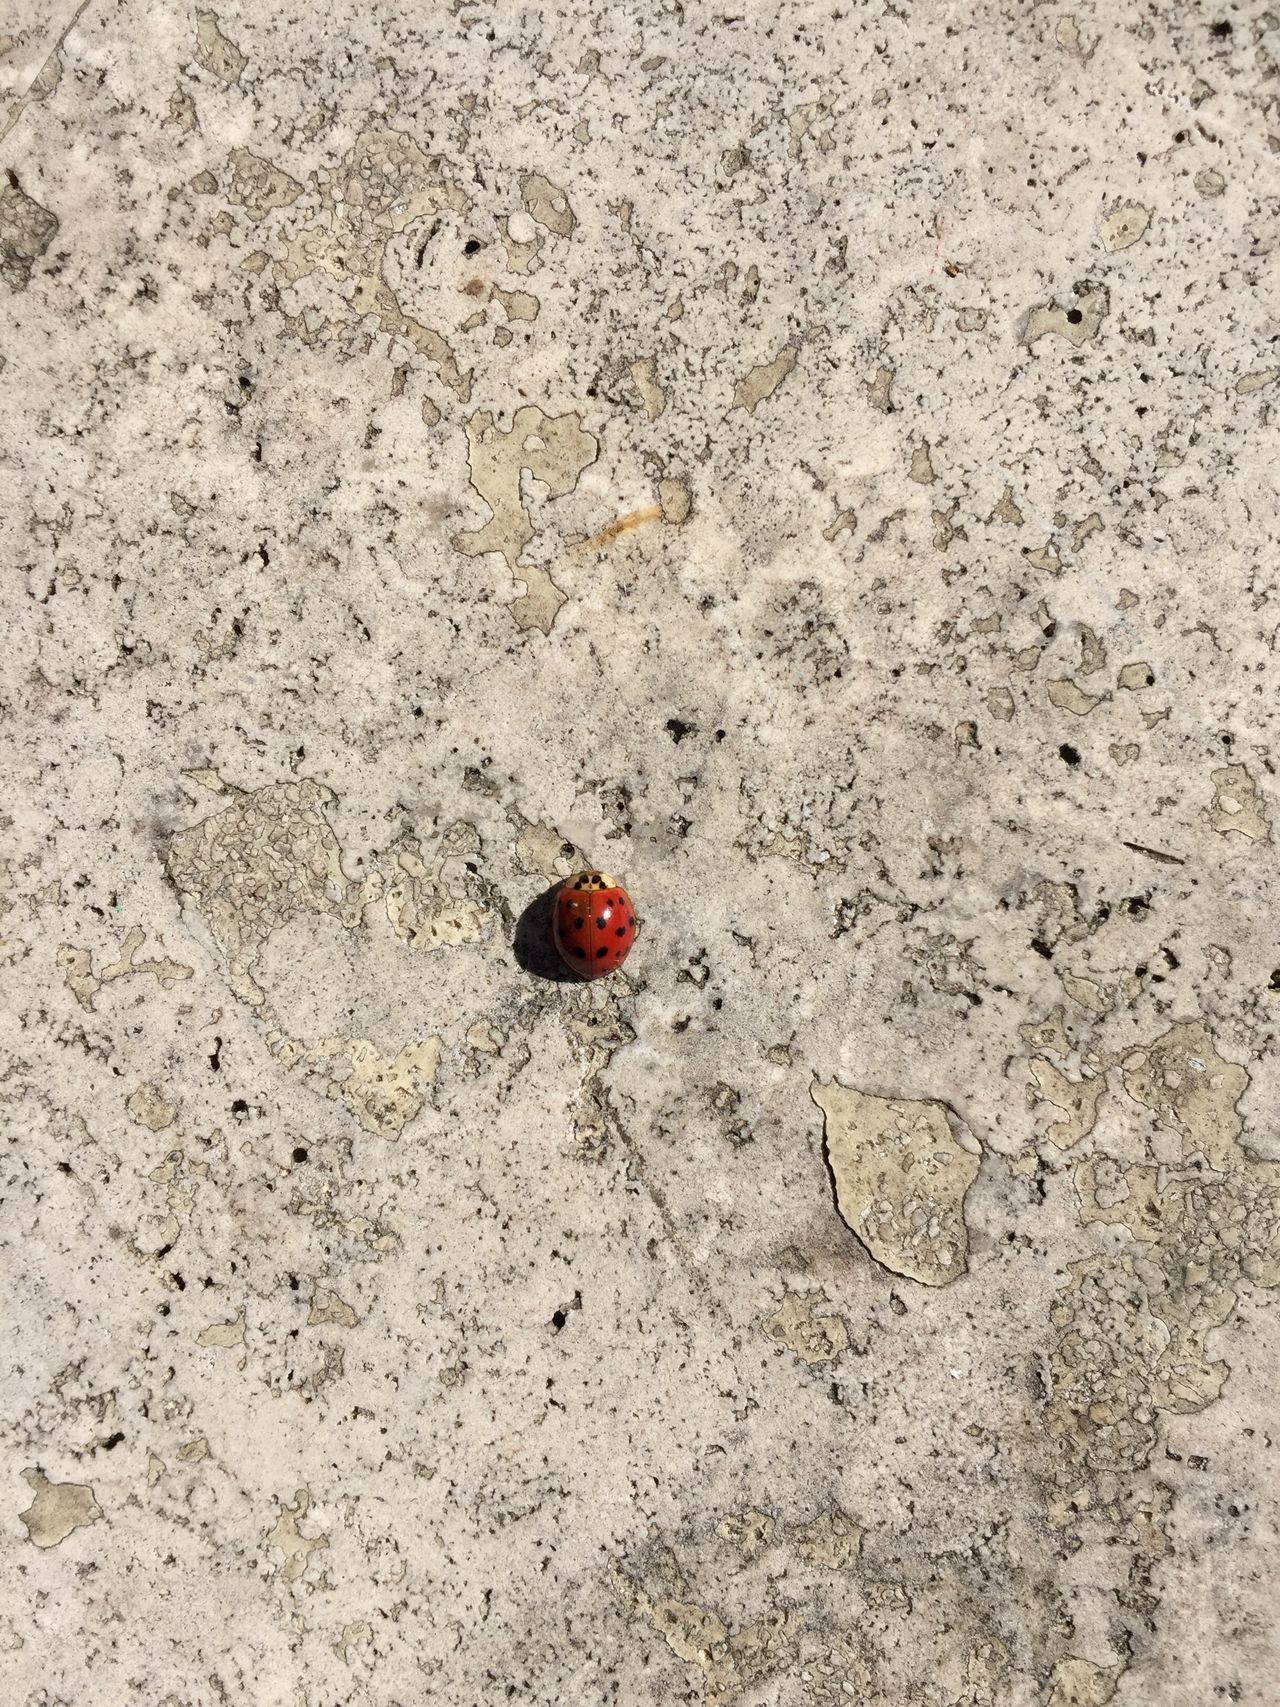 Enjoy The New Normal Ladybug High Angle View Red Insect The Purist (no Edit, No Filter) Outdoors Close-up Nature Sunbathing